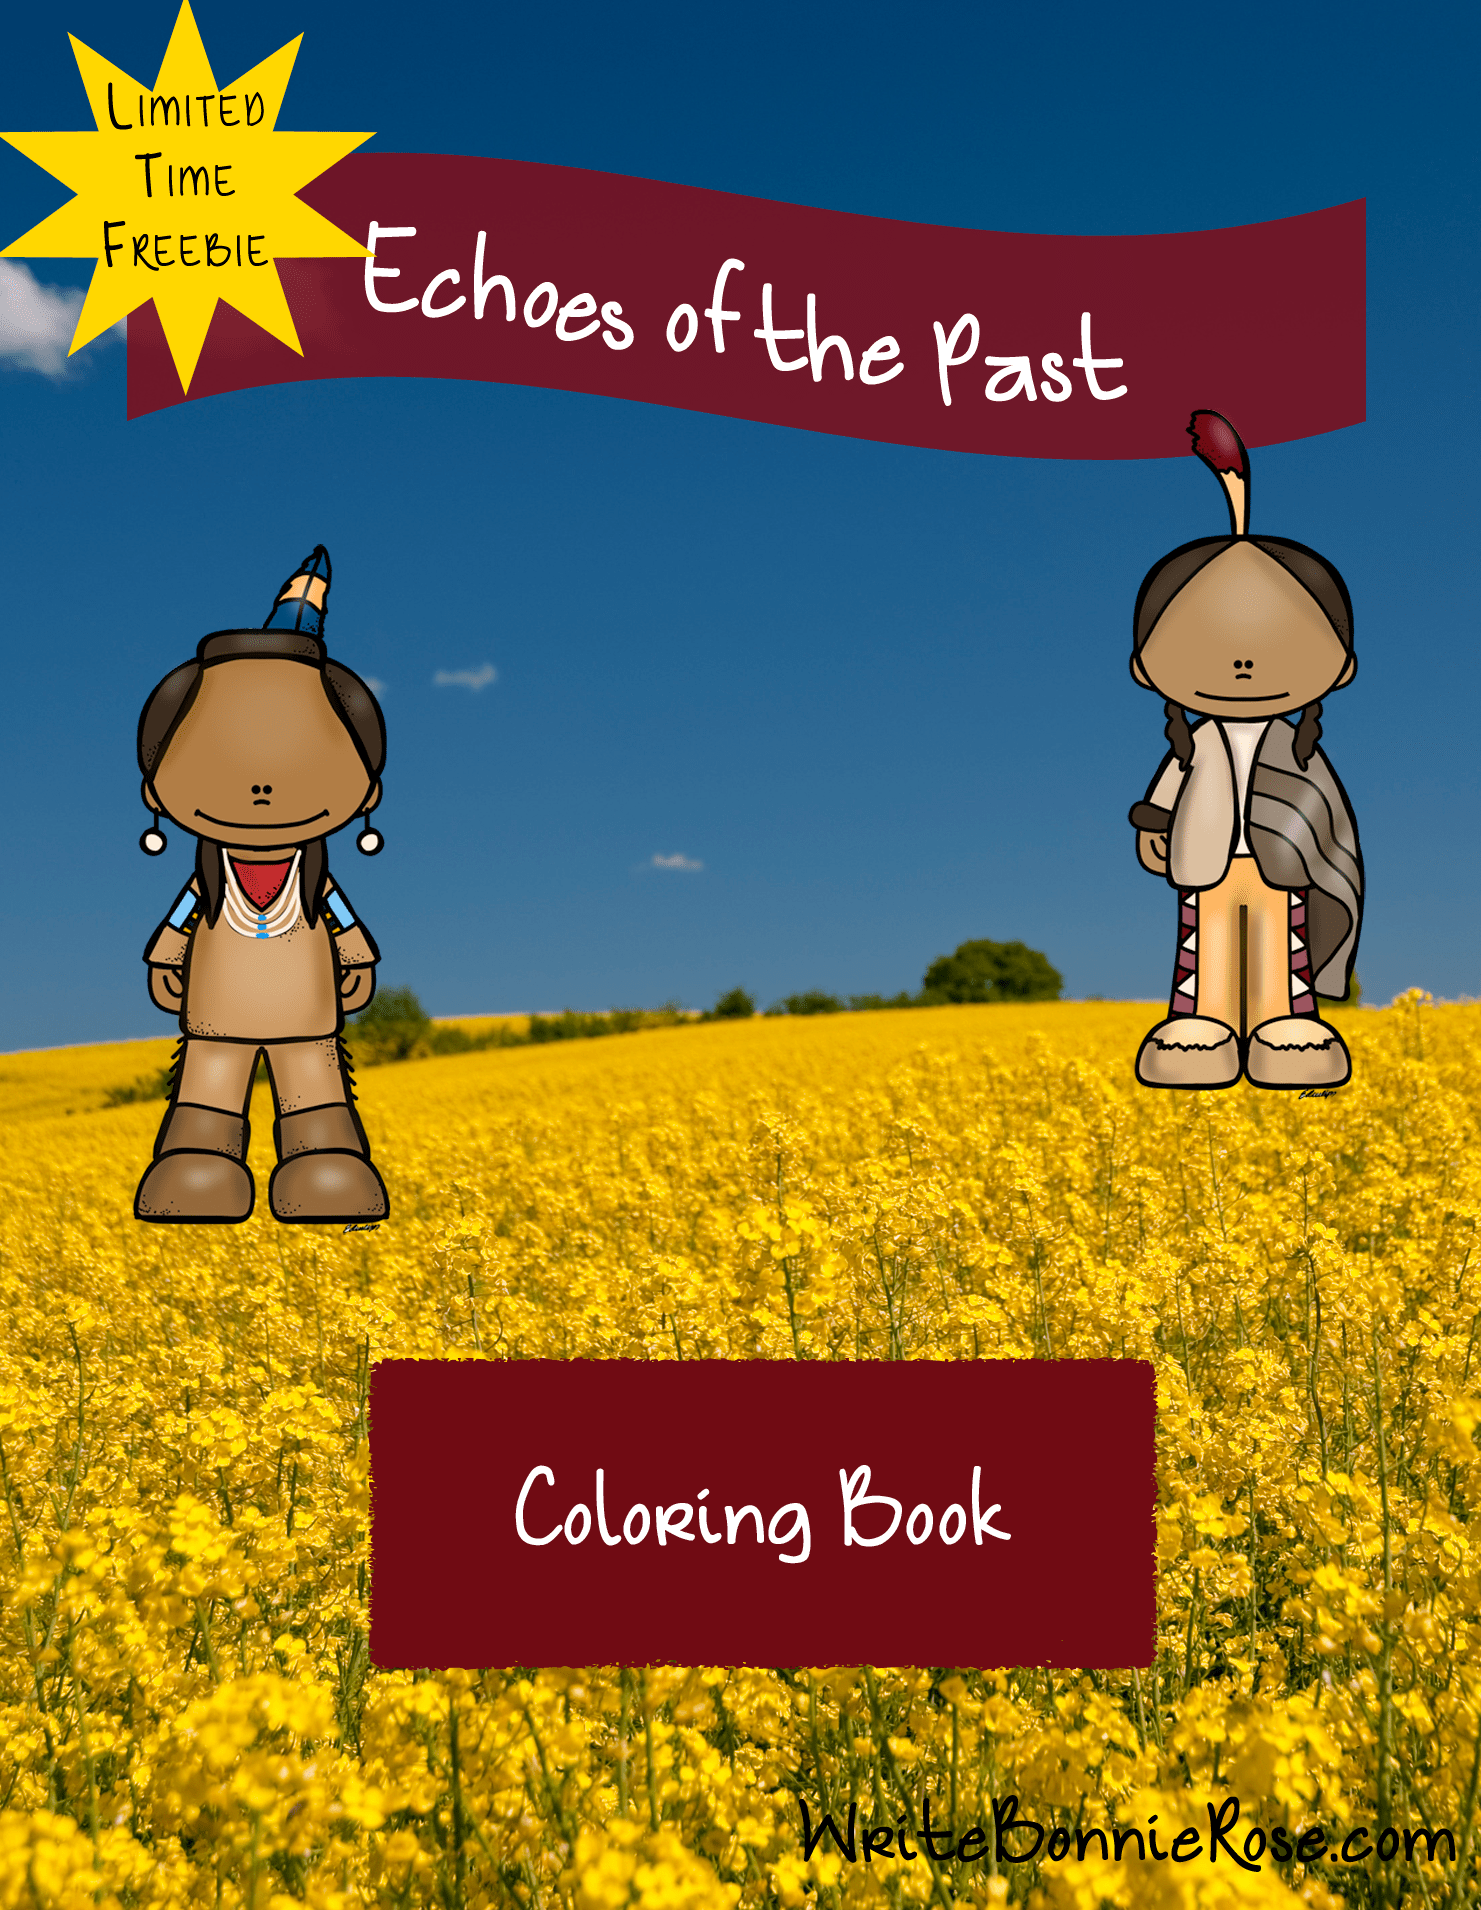 Free Coloring Book Echoes Of The Past Limited Time